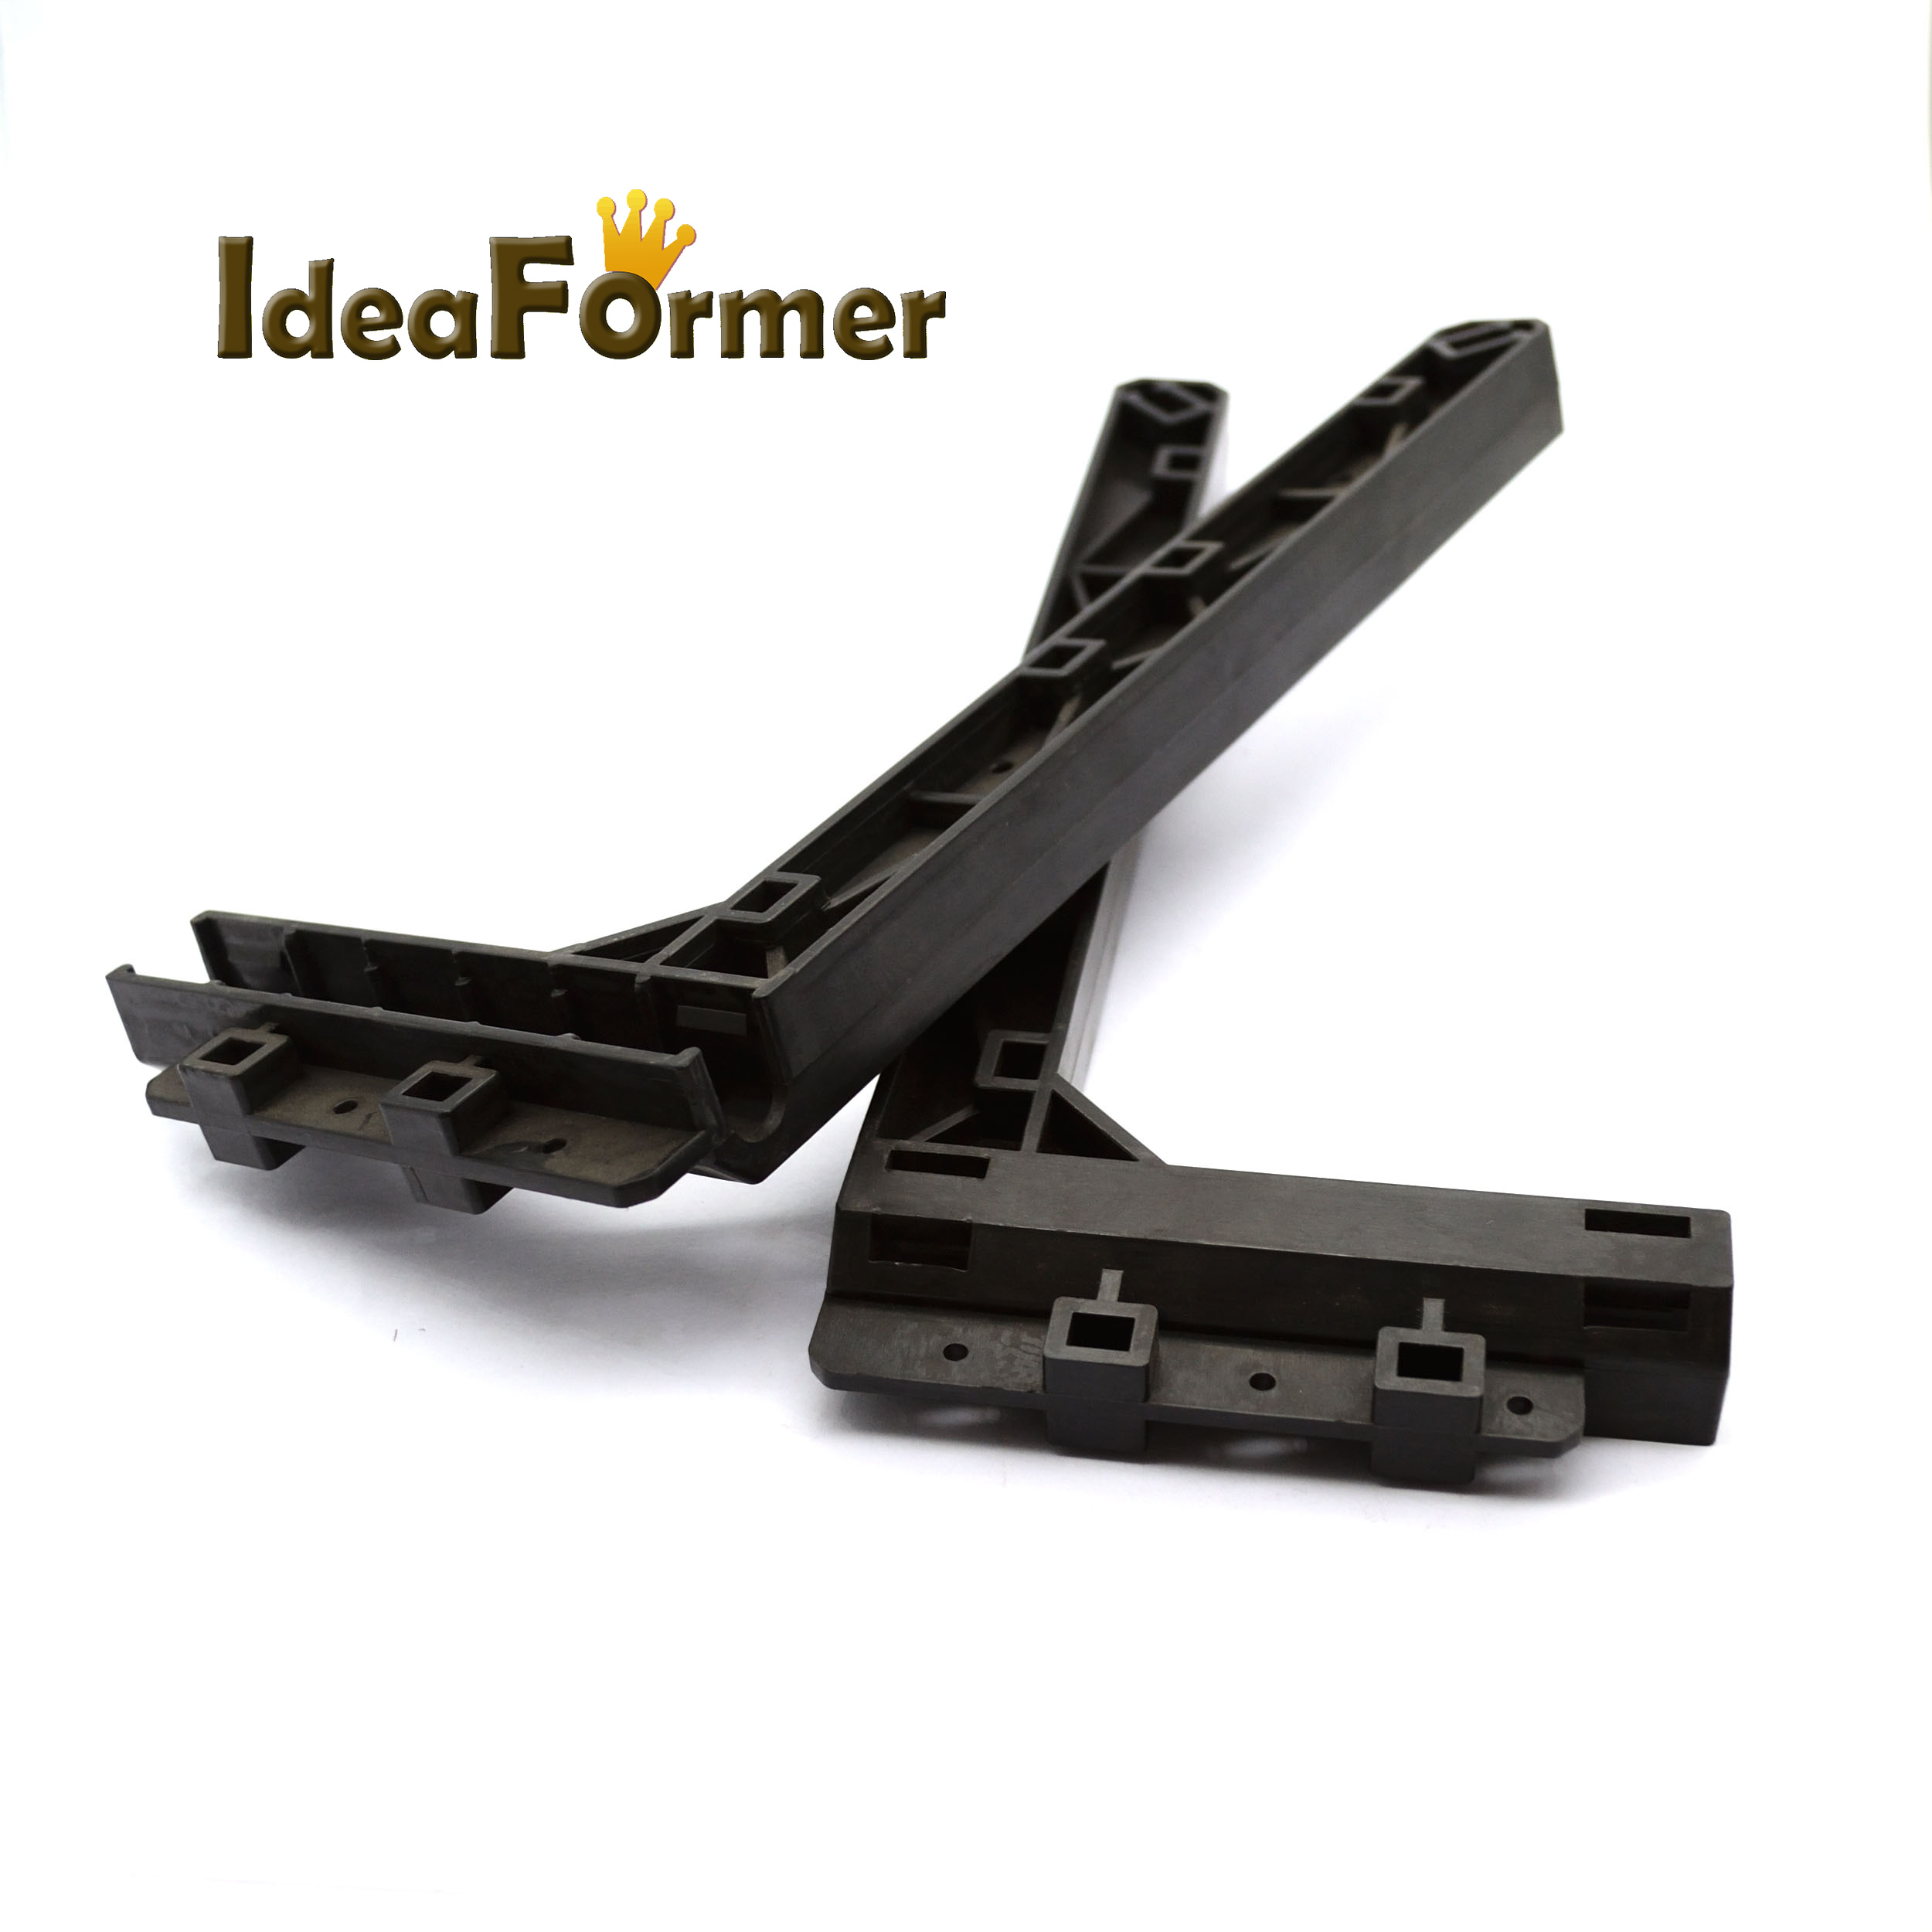 3D Printer Frame Plastic Replicator Extruder Frame Bracket For Heating Bed 3D printer parts